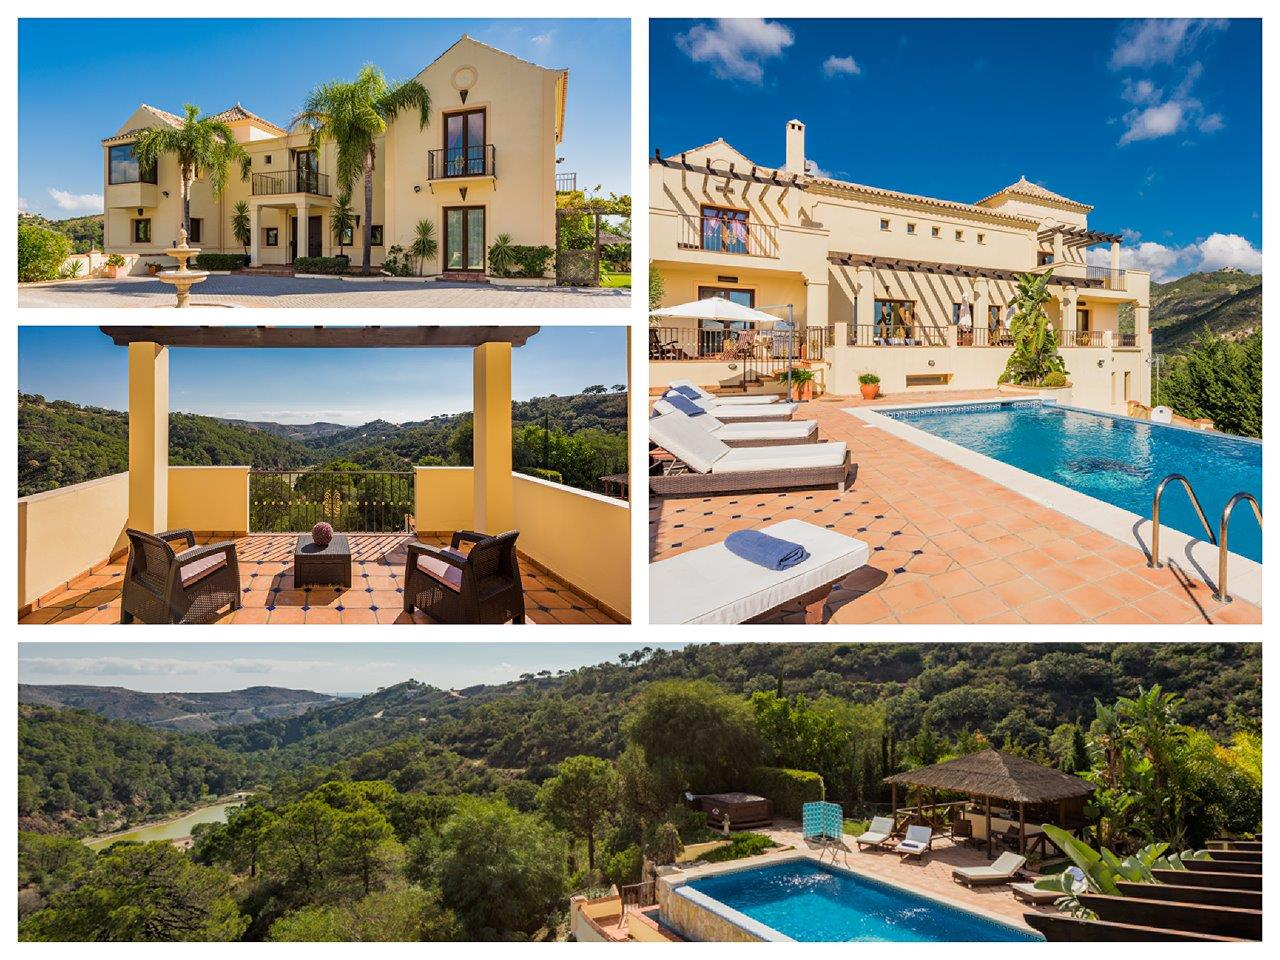 Luxe villa in Benahavis te koop (Monte Mayor)